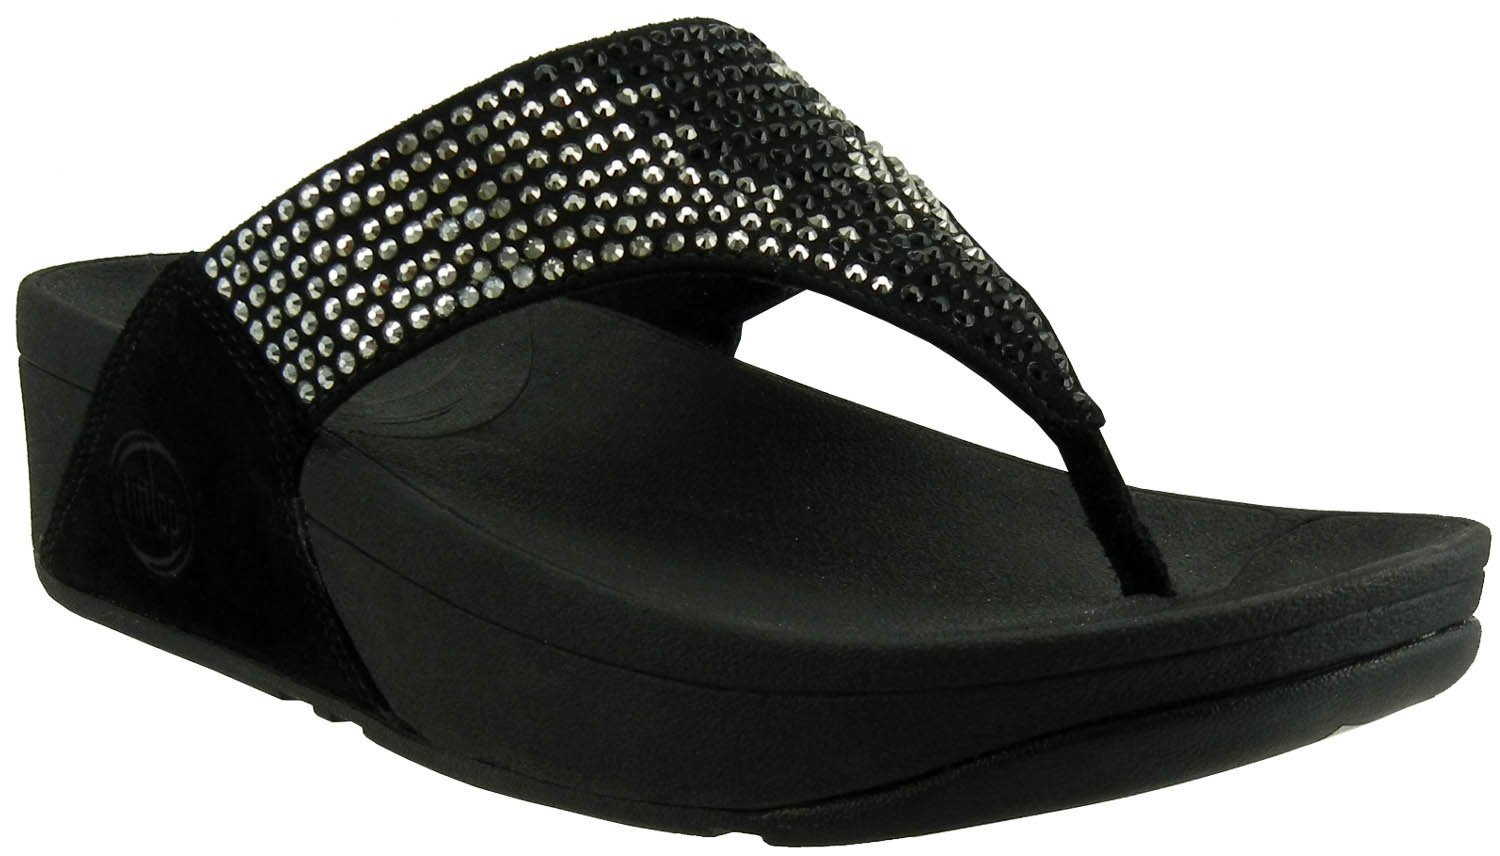 fitflops canada retailers